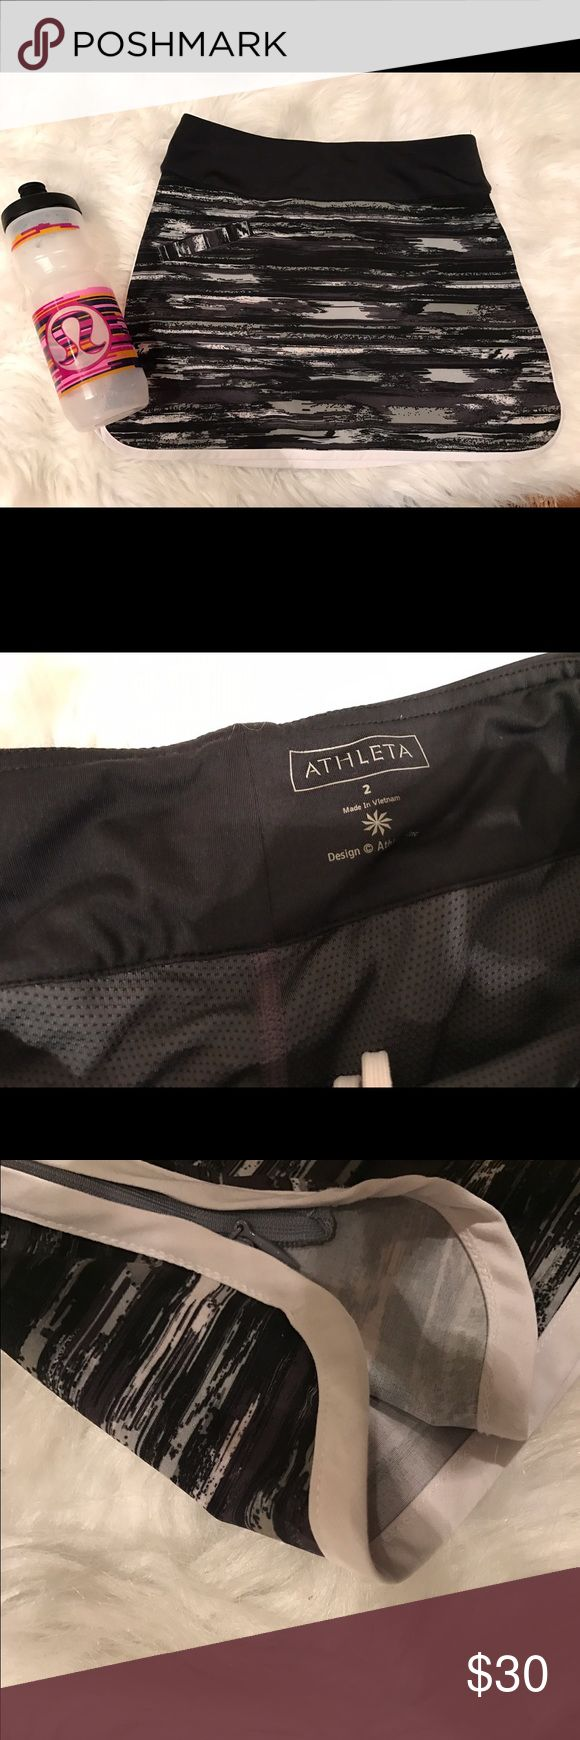 Athleta skirt Athleta women's sport skirt with shorts This skirt is perfect for the sporty look the colors are well put together the zipper on the side it work perfectly fine there are no stains rips or fades ! The skirt is true to size 💌📦packed with love 📦💌‼️no trades‼️🚫price is firm🚫 Athleta Skirts Mini